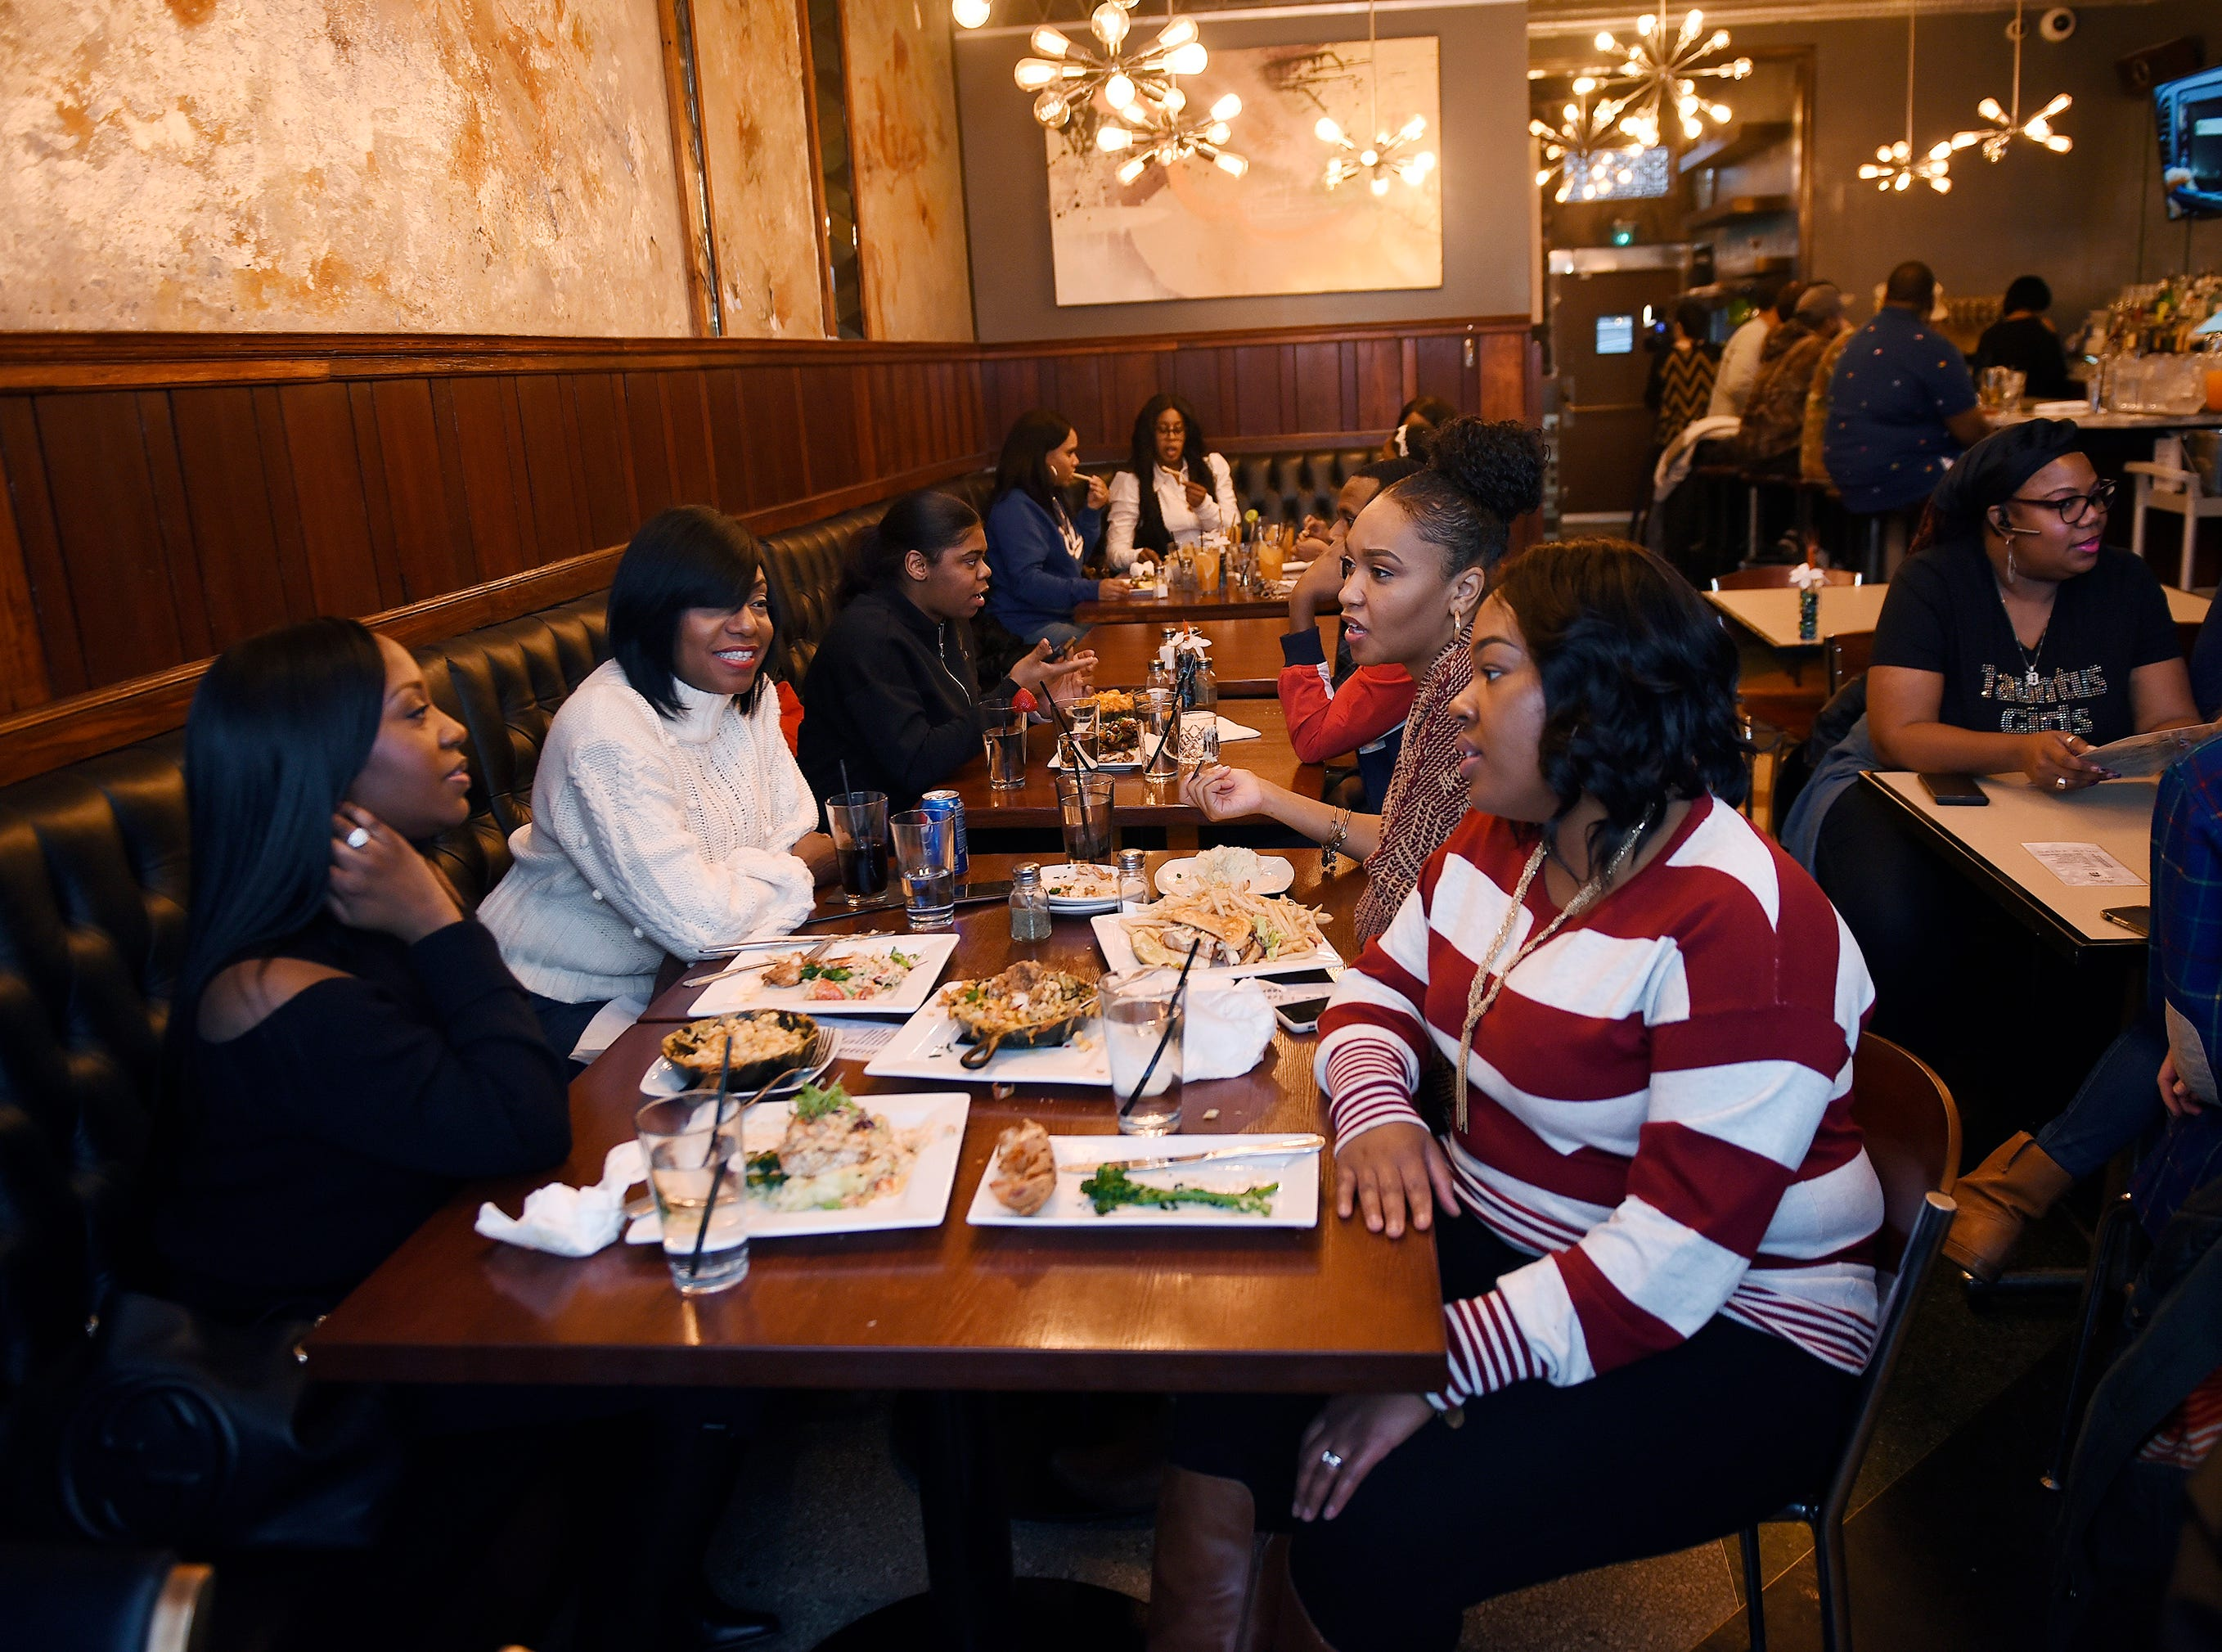 l-r, foreground, Tanisha Berry, (blk top), 31, of Livonia who is celebrating her birthday with friends Ericka Wimbley, (red & white sweater) 30, of Westland, Grace Wimbley, (white sweater), 41,of Redford and Chimere Dodson,(29, ponytail), of Lansing enjoy their conversation during dinner.